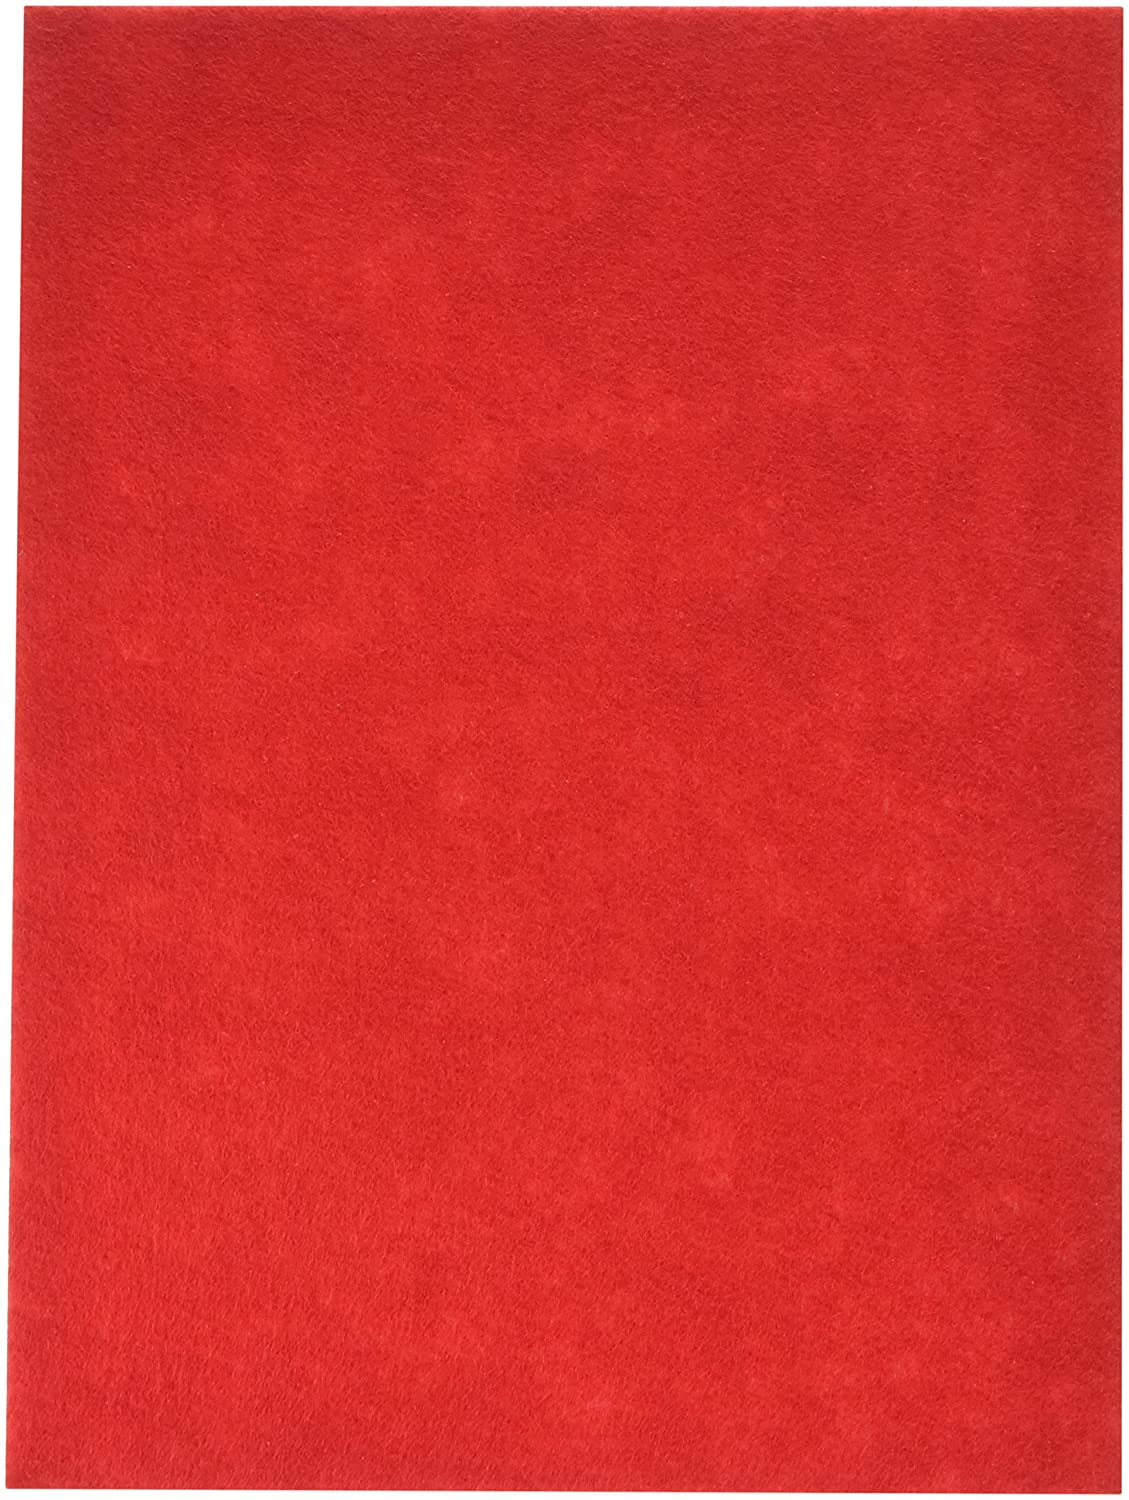 Stick It Felt 9X12 Red 1 Pack